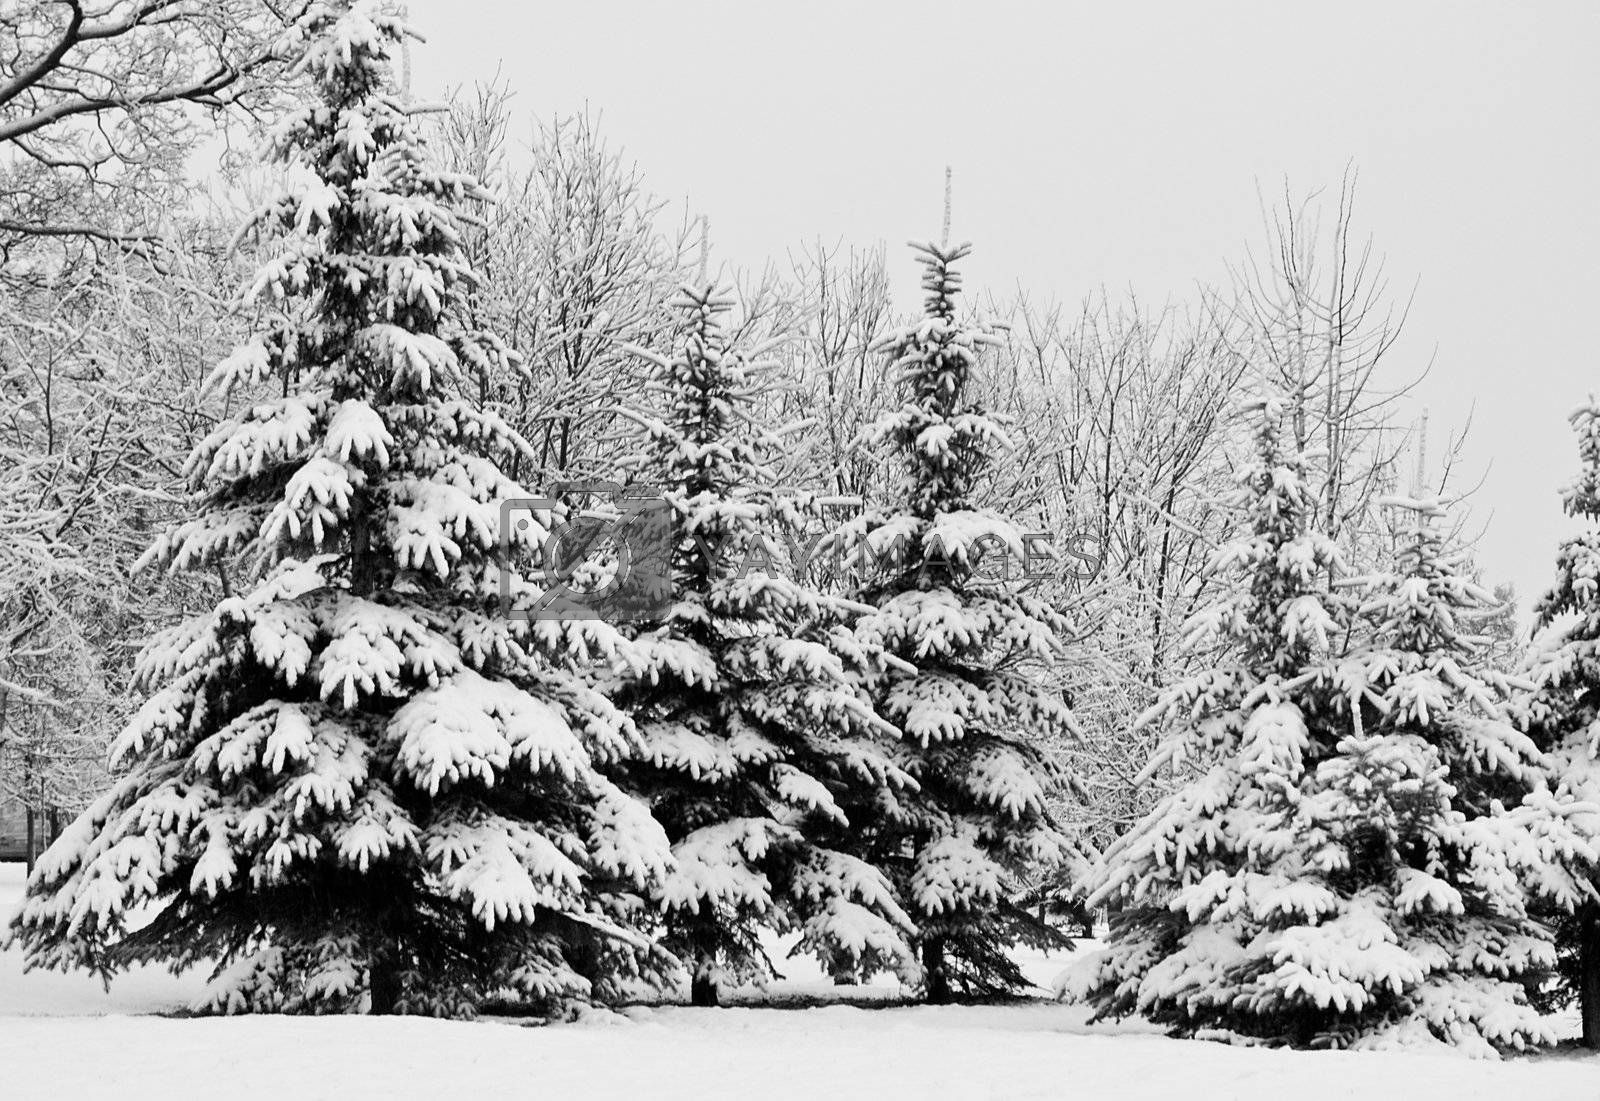 winter fir trees covered with snow